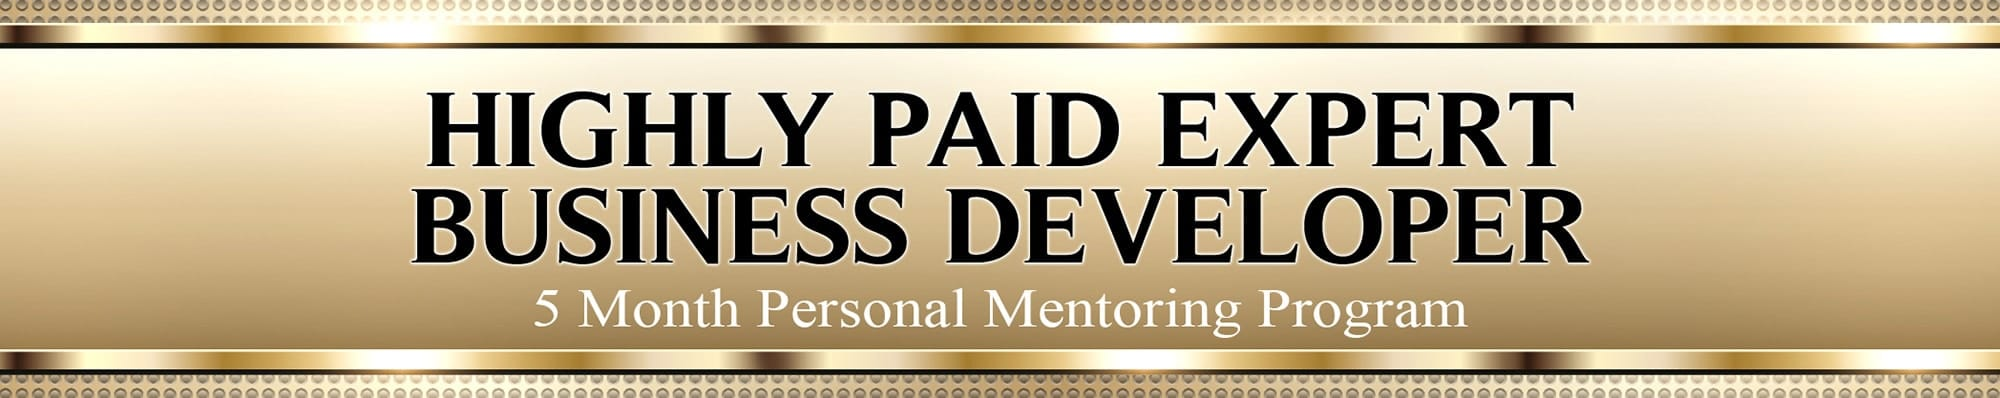 Highly Paid Expert Business Developer banner